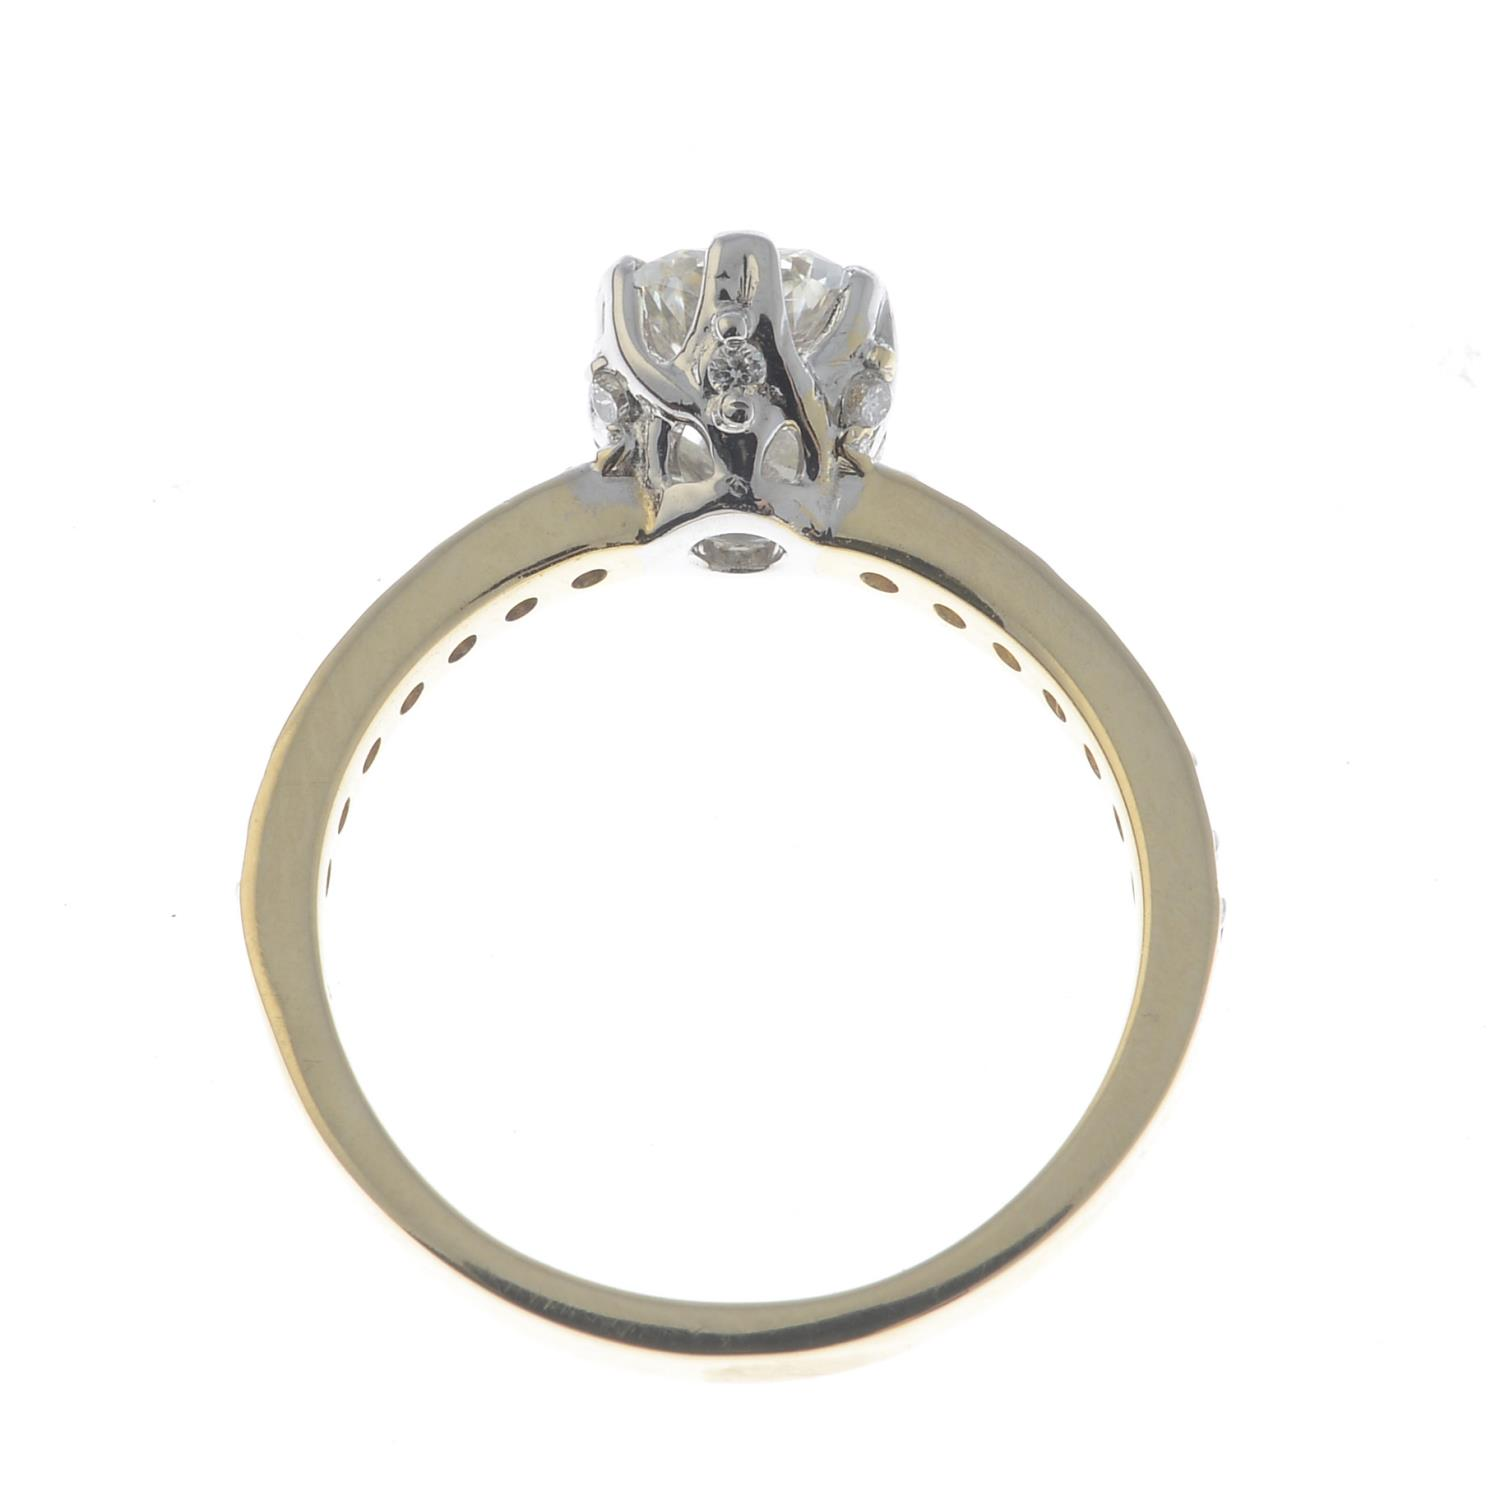 Lot 31 - A fracture-filled diamond ring.